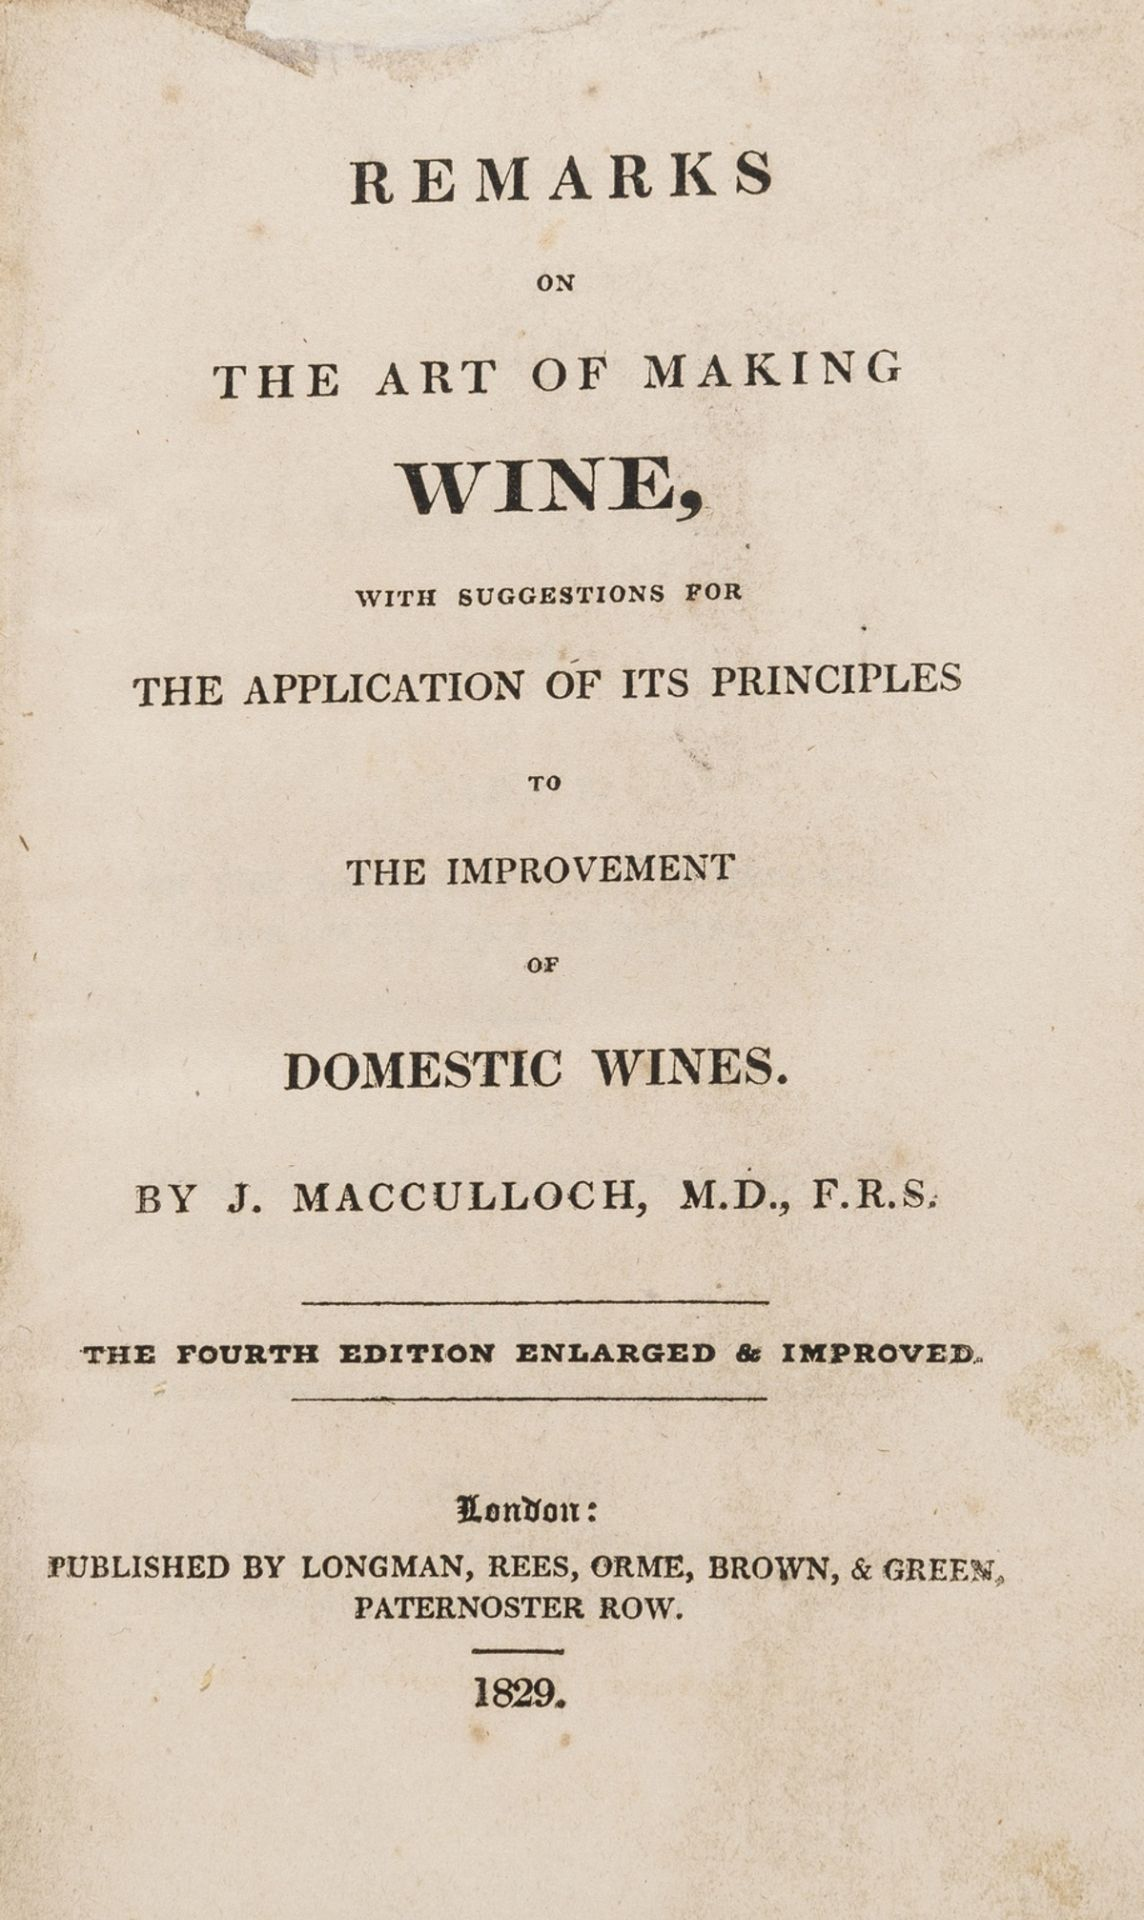 Wine.- Macculloch (J.) Remarks on the Art of Making Wine, fourth edition, 1829.